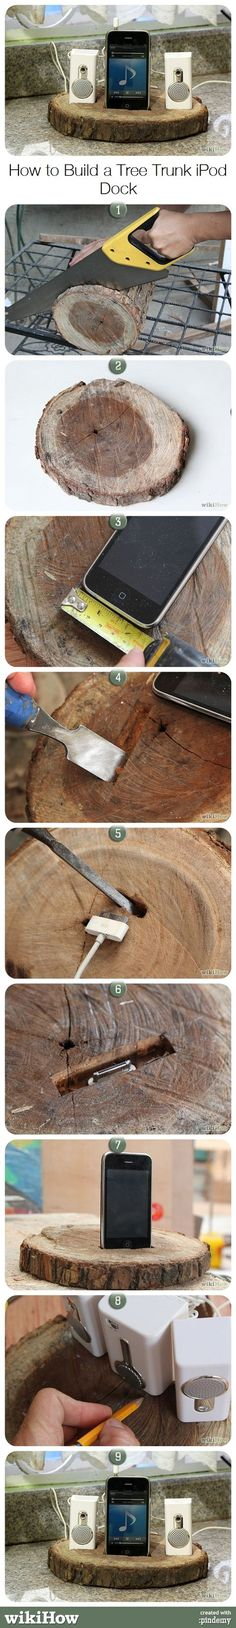 How to Build a Tree Trunk iPod Dock